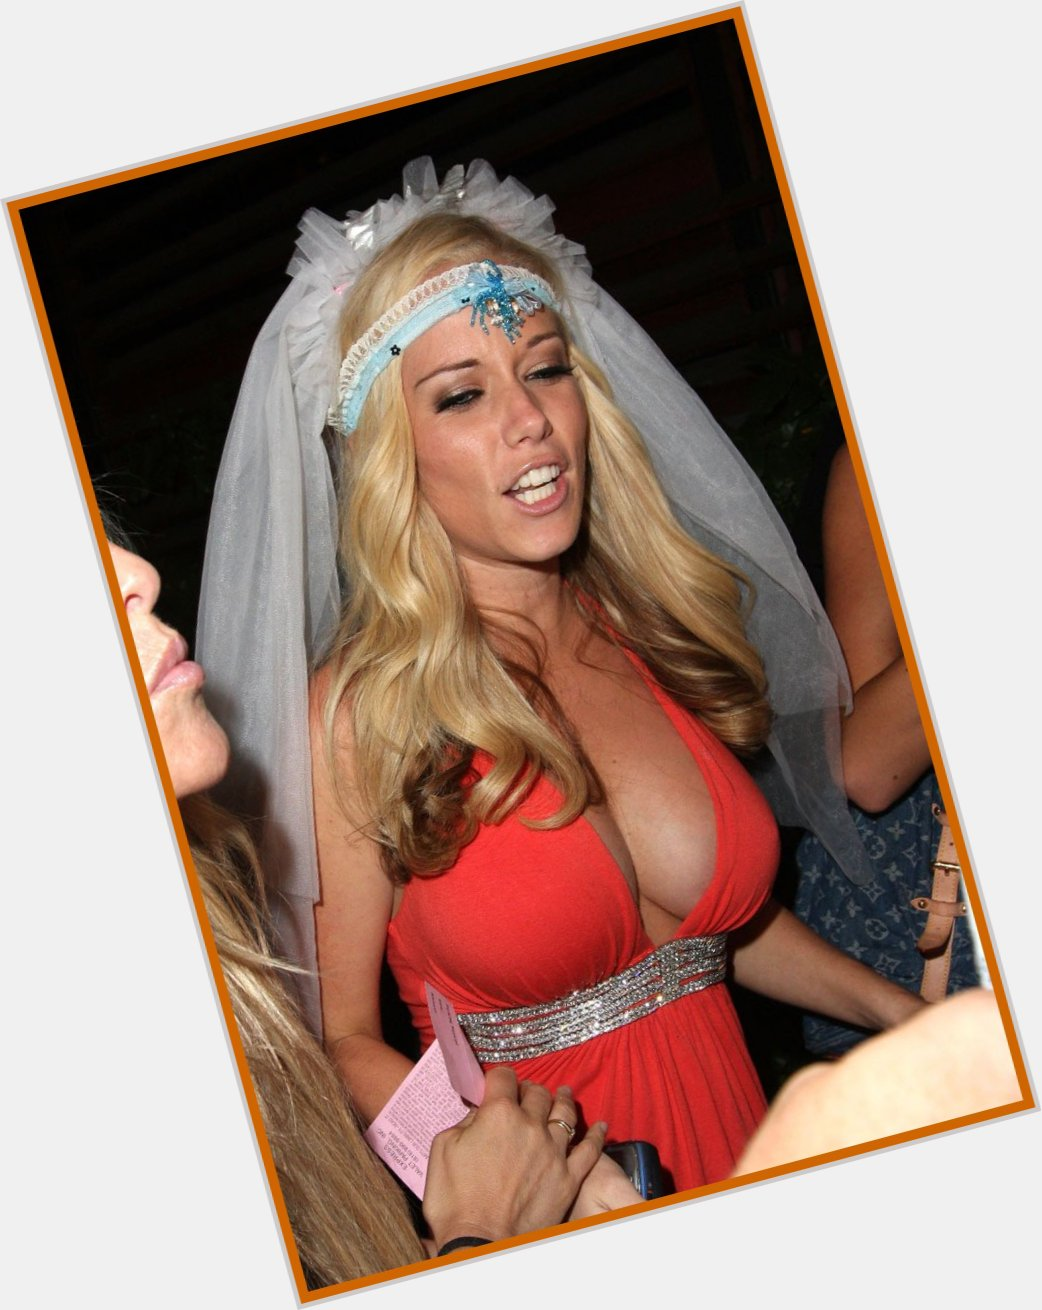 kendra wilkinson splash 1.jpg